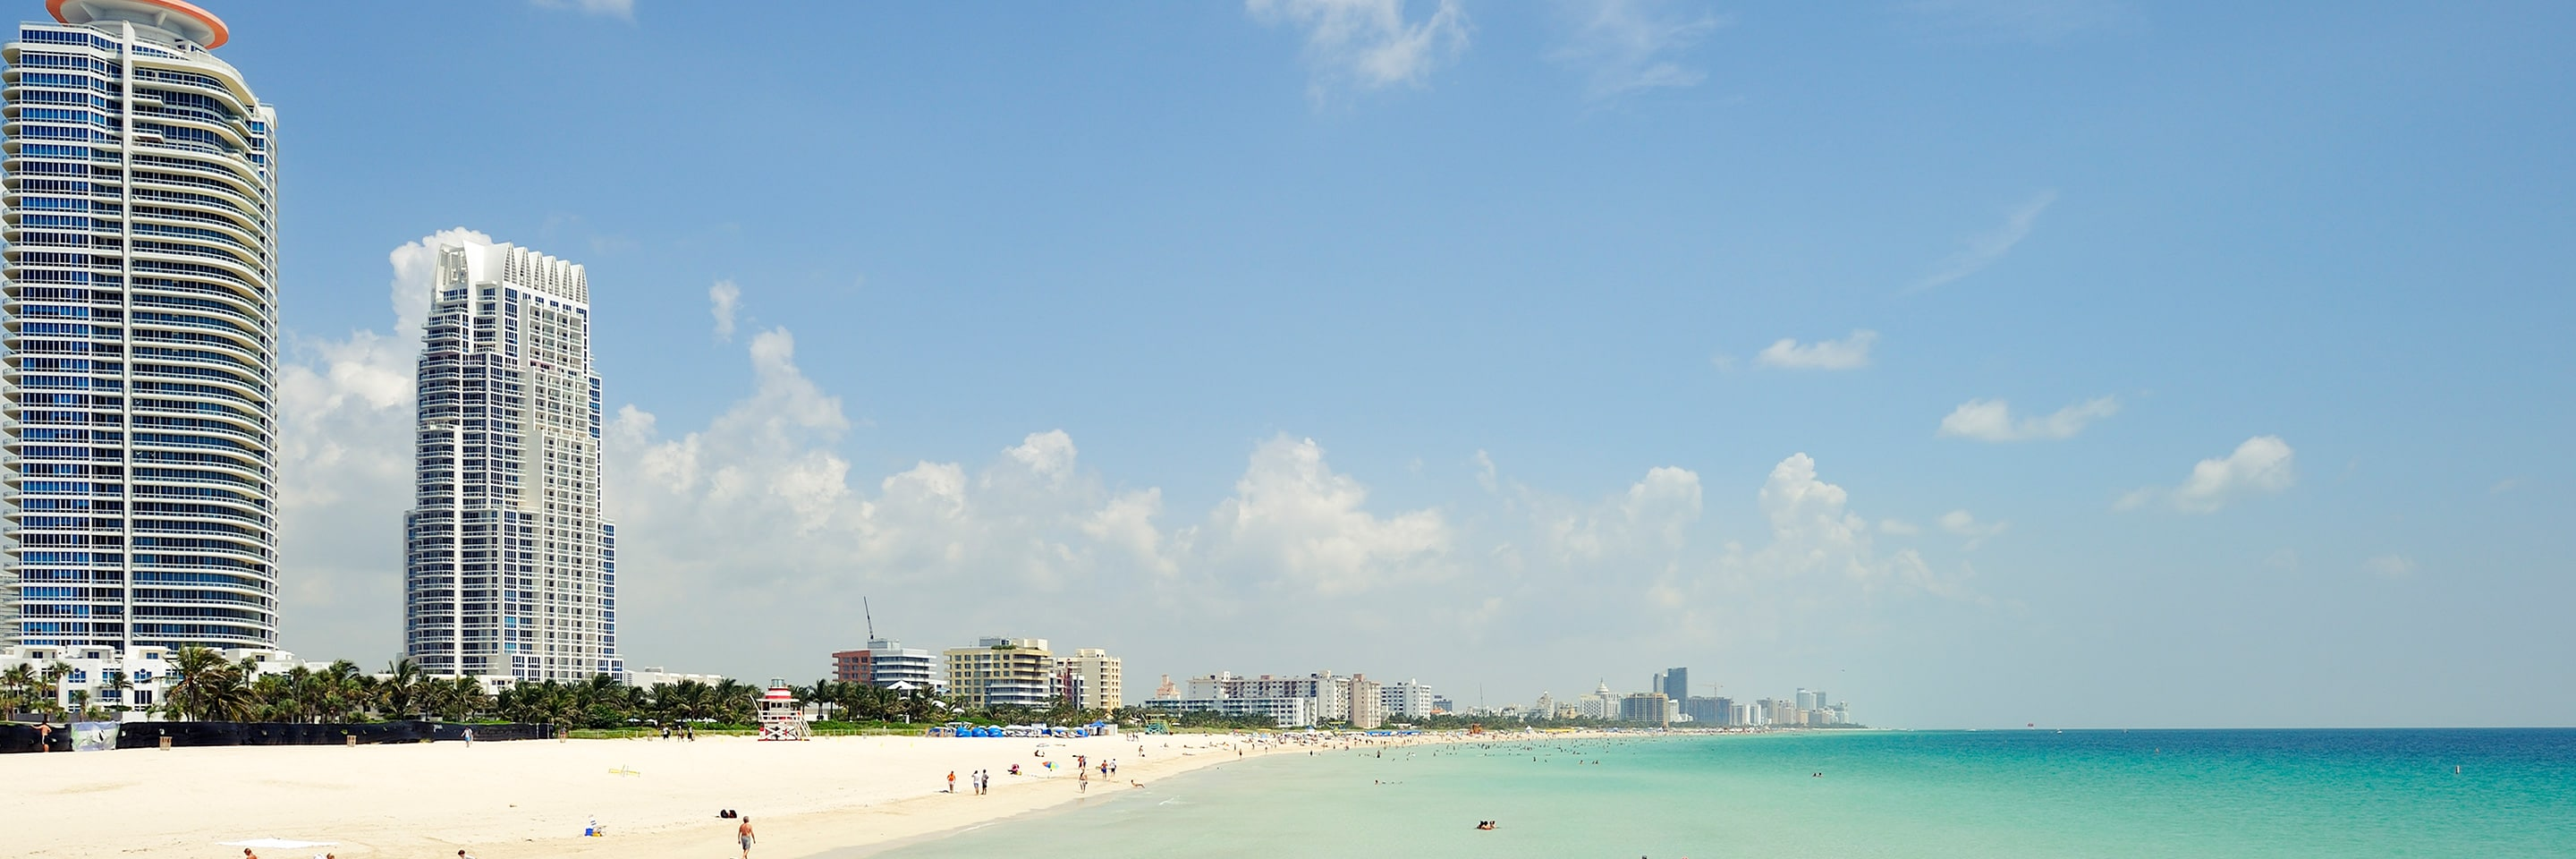 Top Hotels Near Miami Beach Marriott Miami Beach Hotels